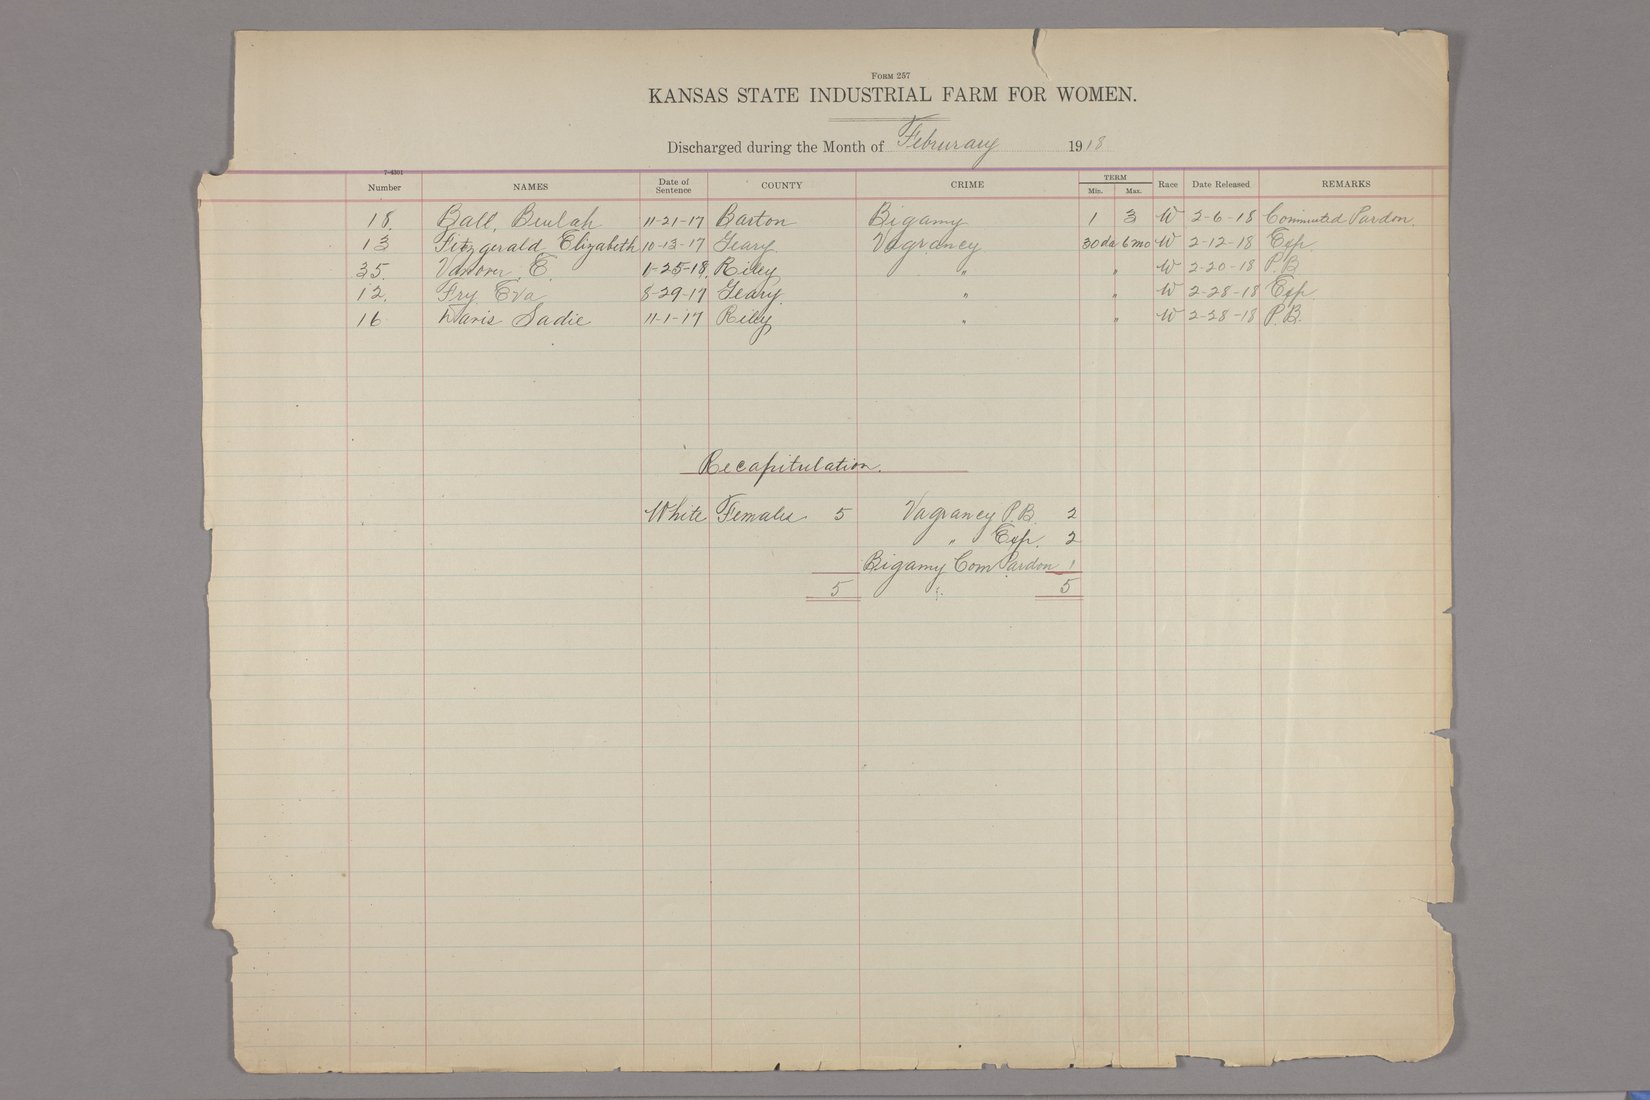 Inmates discharged register, Kansas State Industrial Farm for Women - February, 1918 & recapitulation page